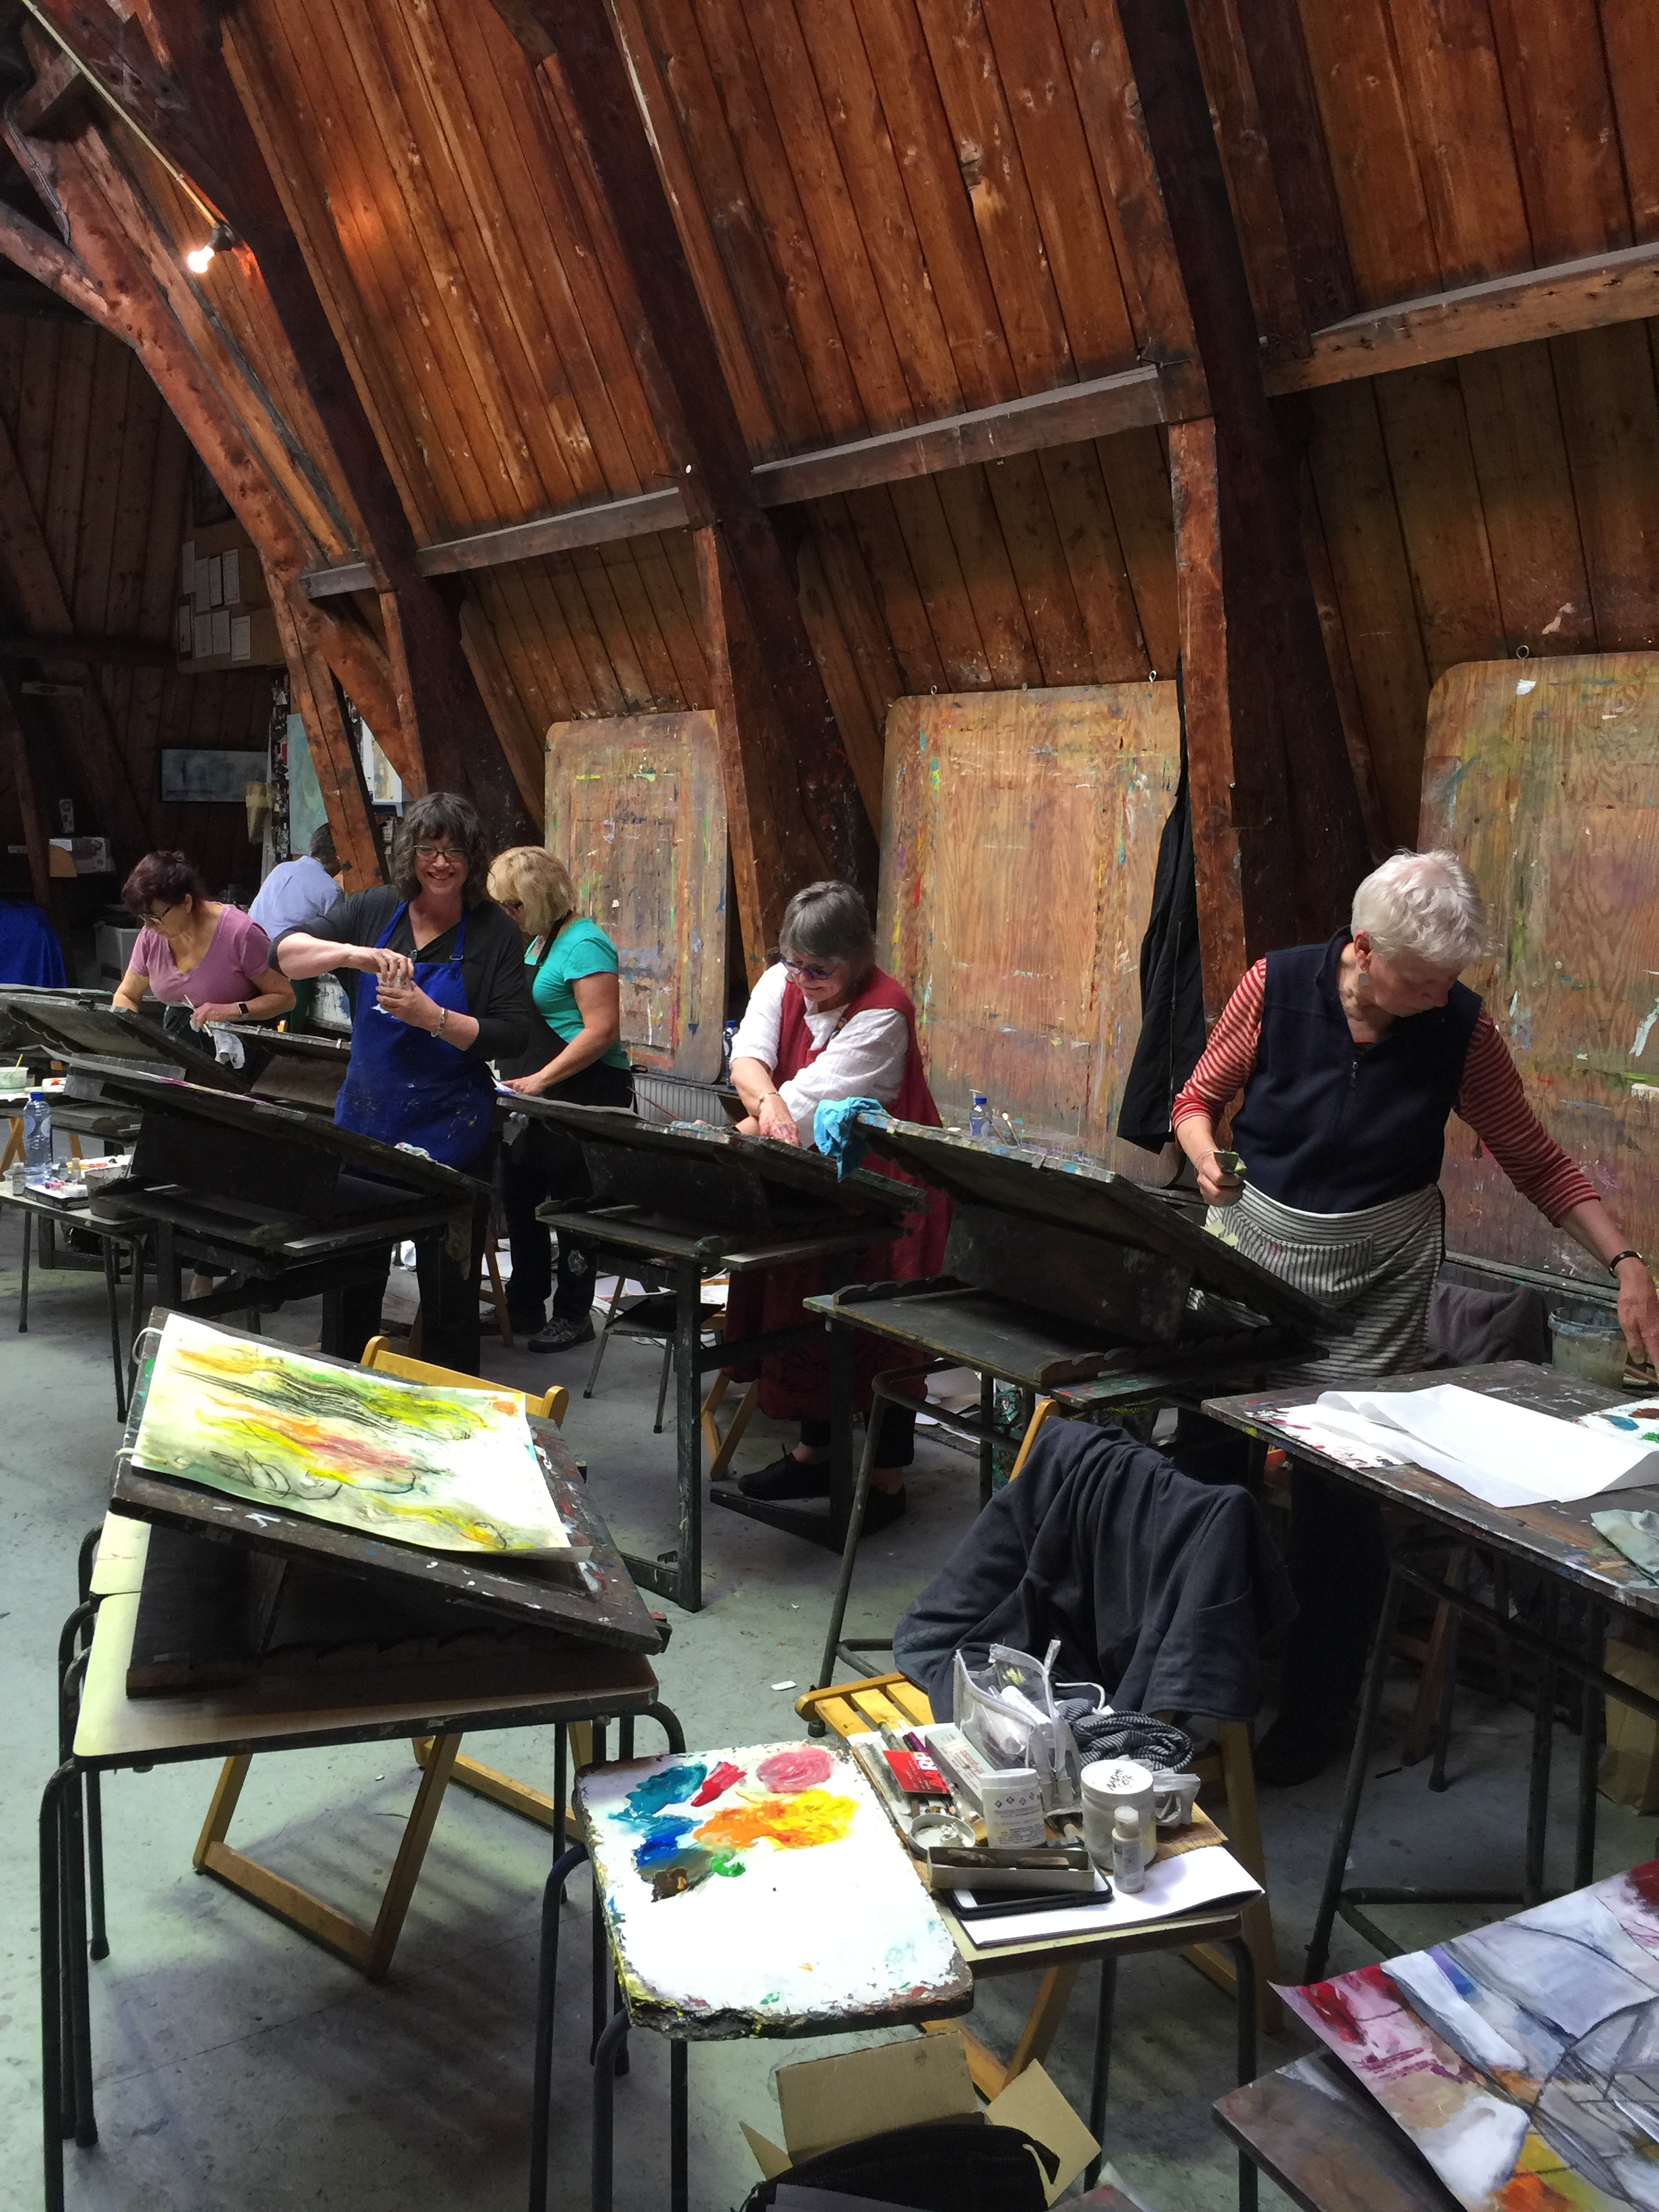 Some of the artists from Free Spirits Bellissima Art Escape enjoying their time in the studio